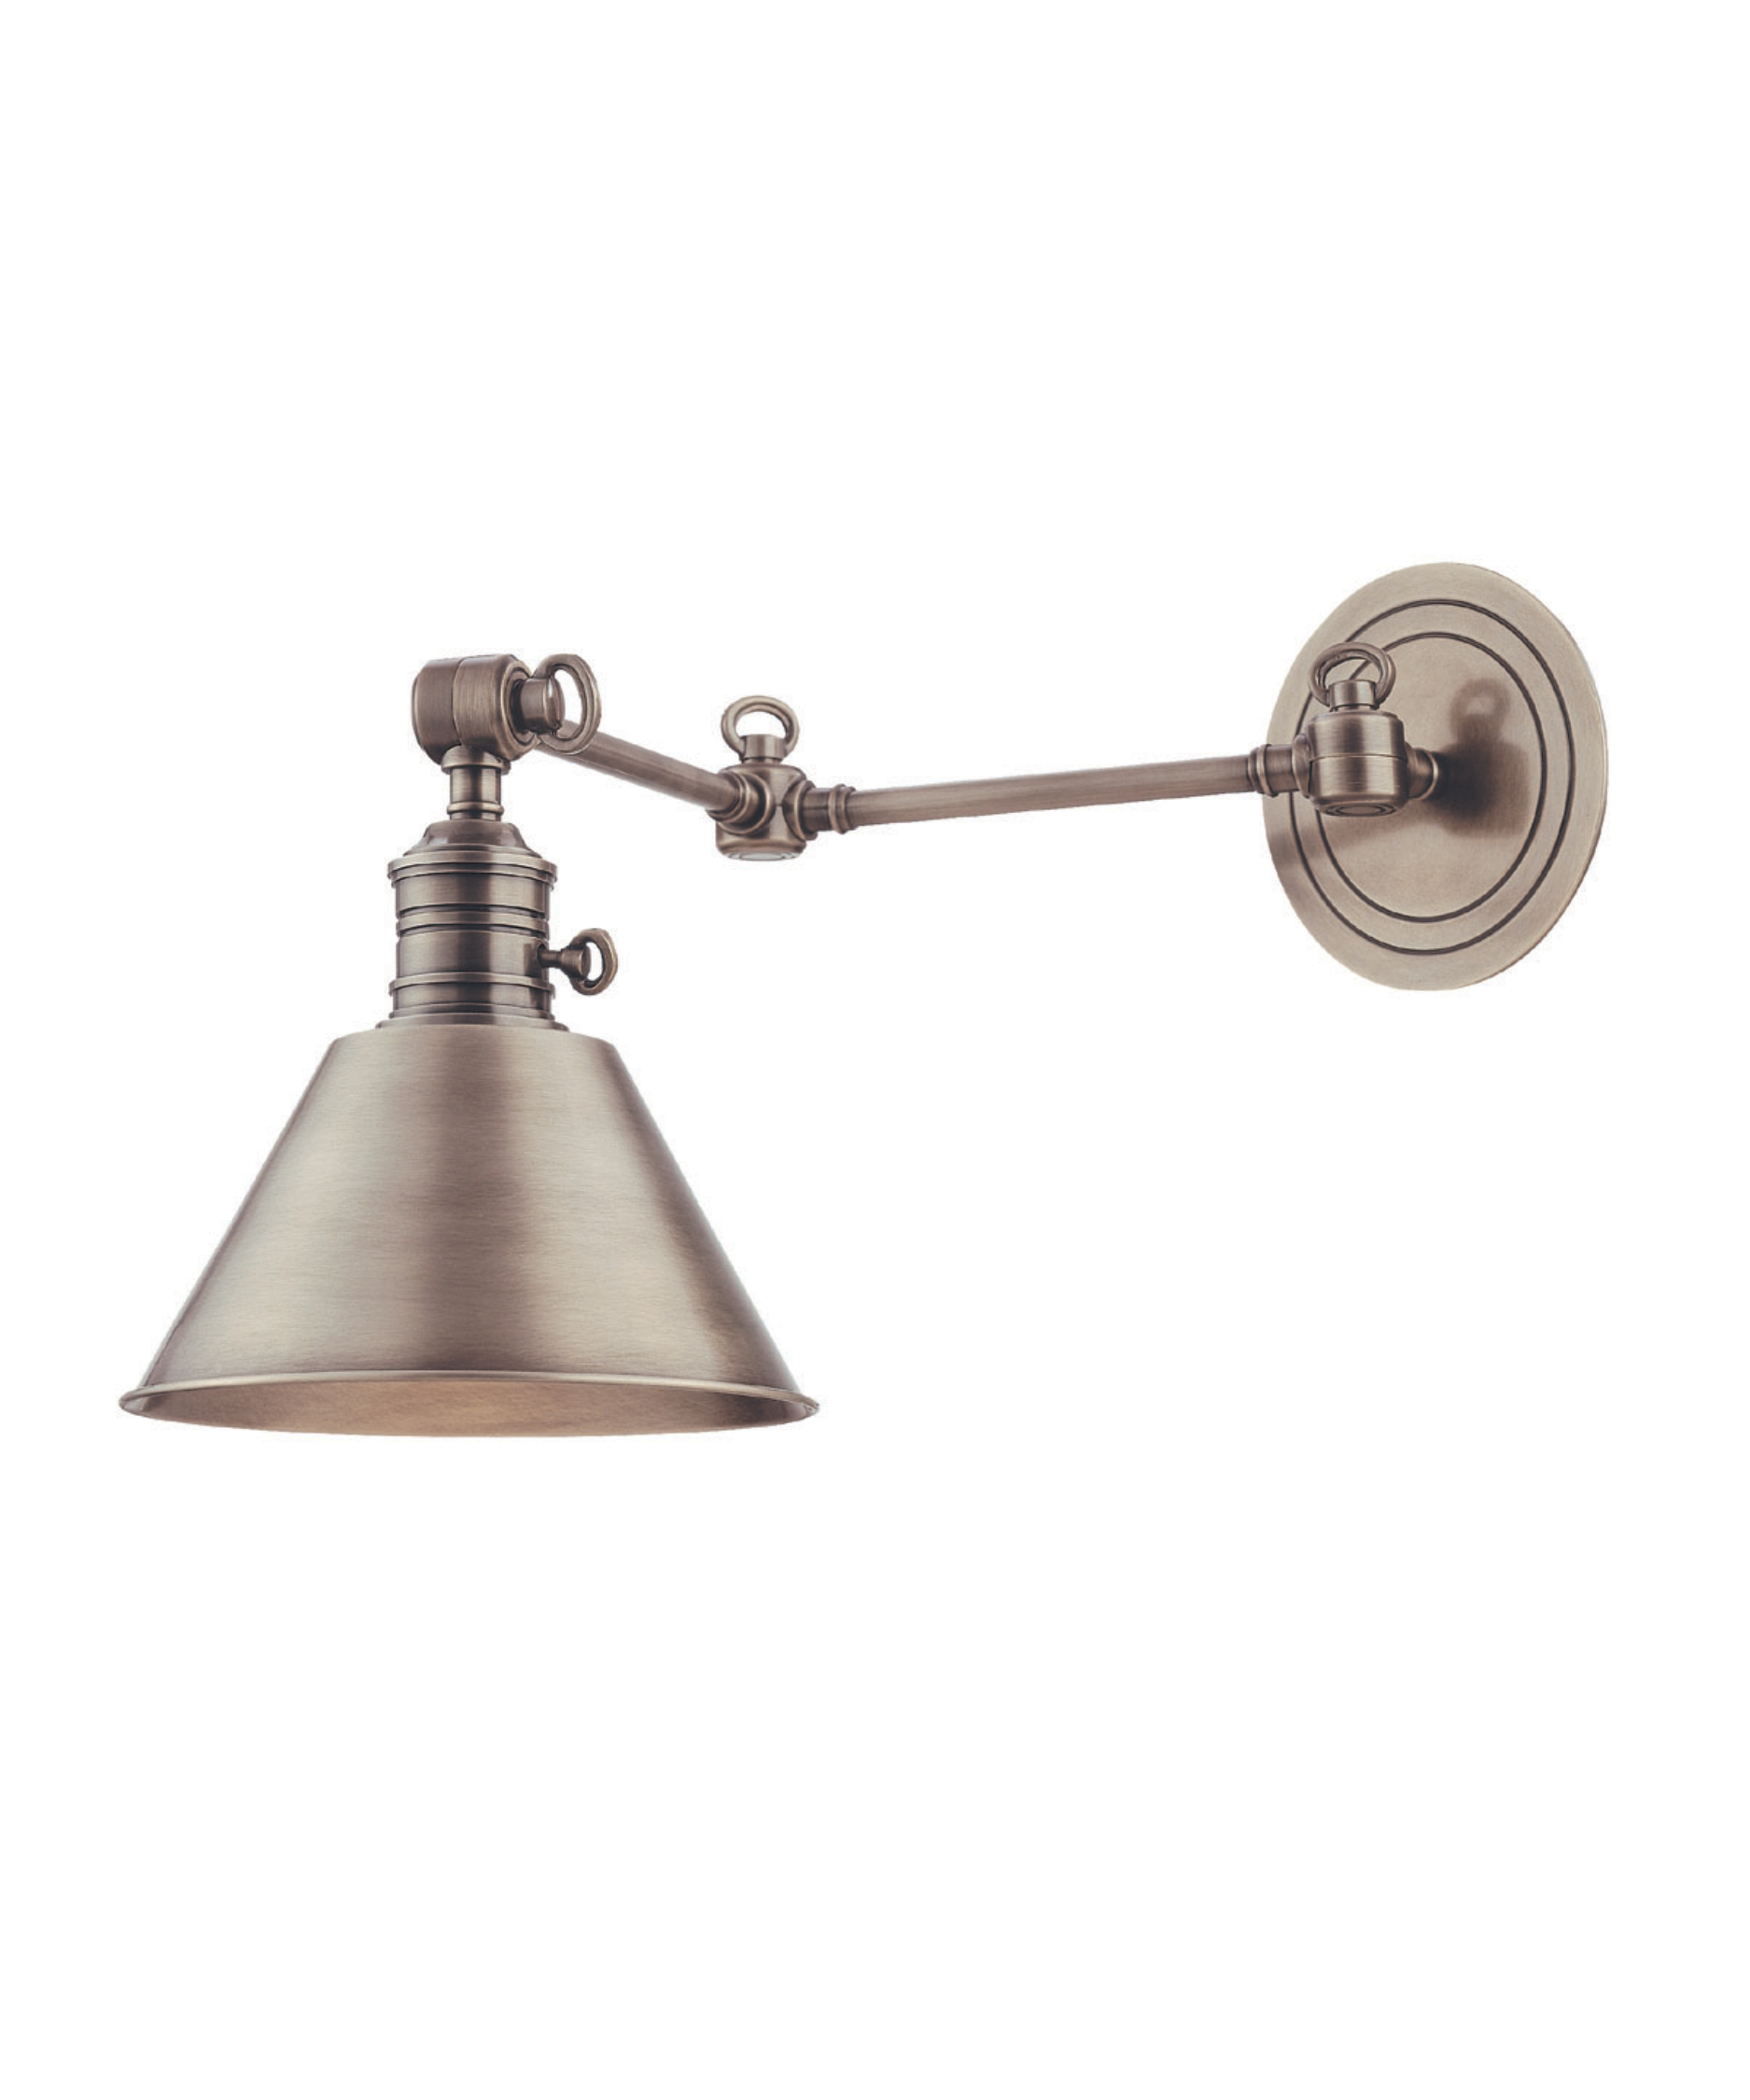 plug in wall lamp swing arm wall lamp in 25 convincing reasons to 10775